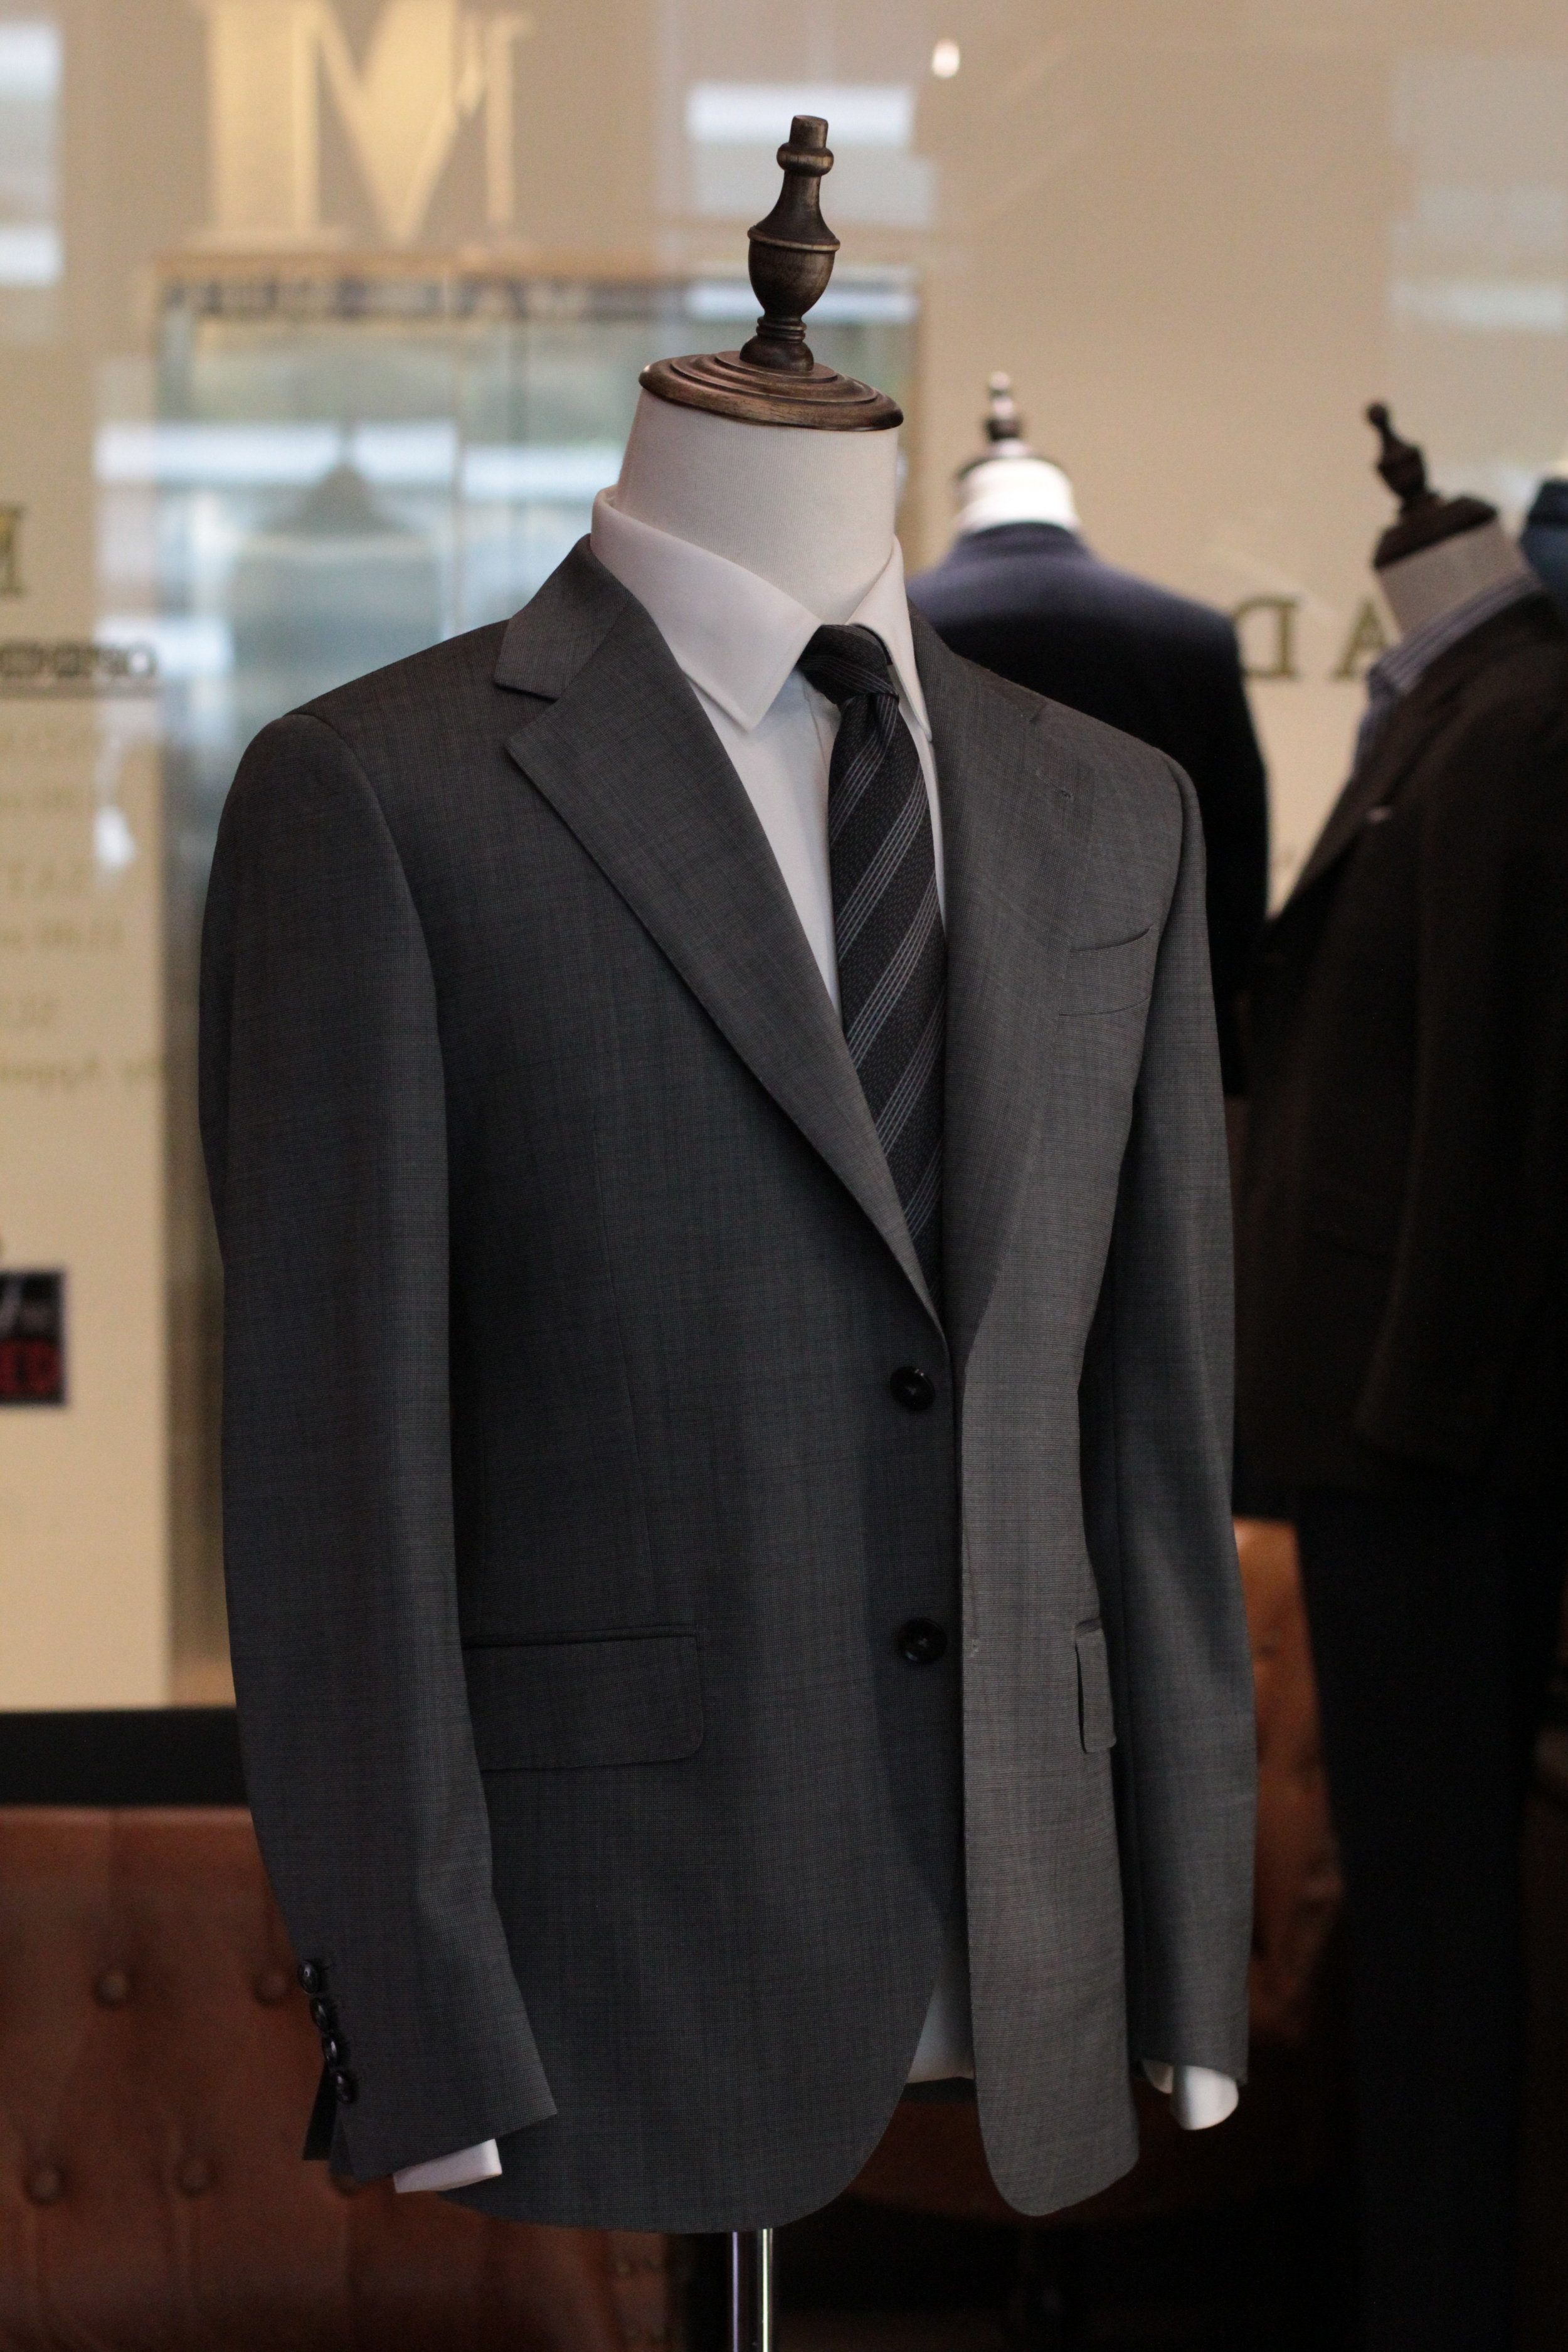 Mr Barbera Made Suits | Made to Measure Suits |Bespoke Singapore Tailor STYLBIELLA Side View.JPG